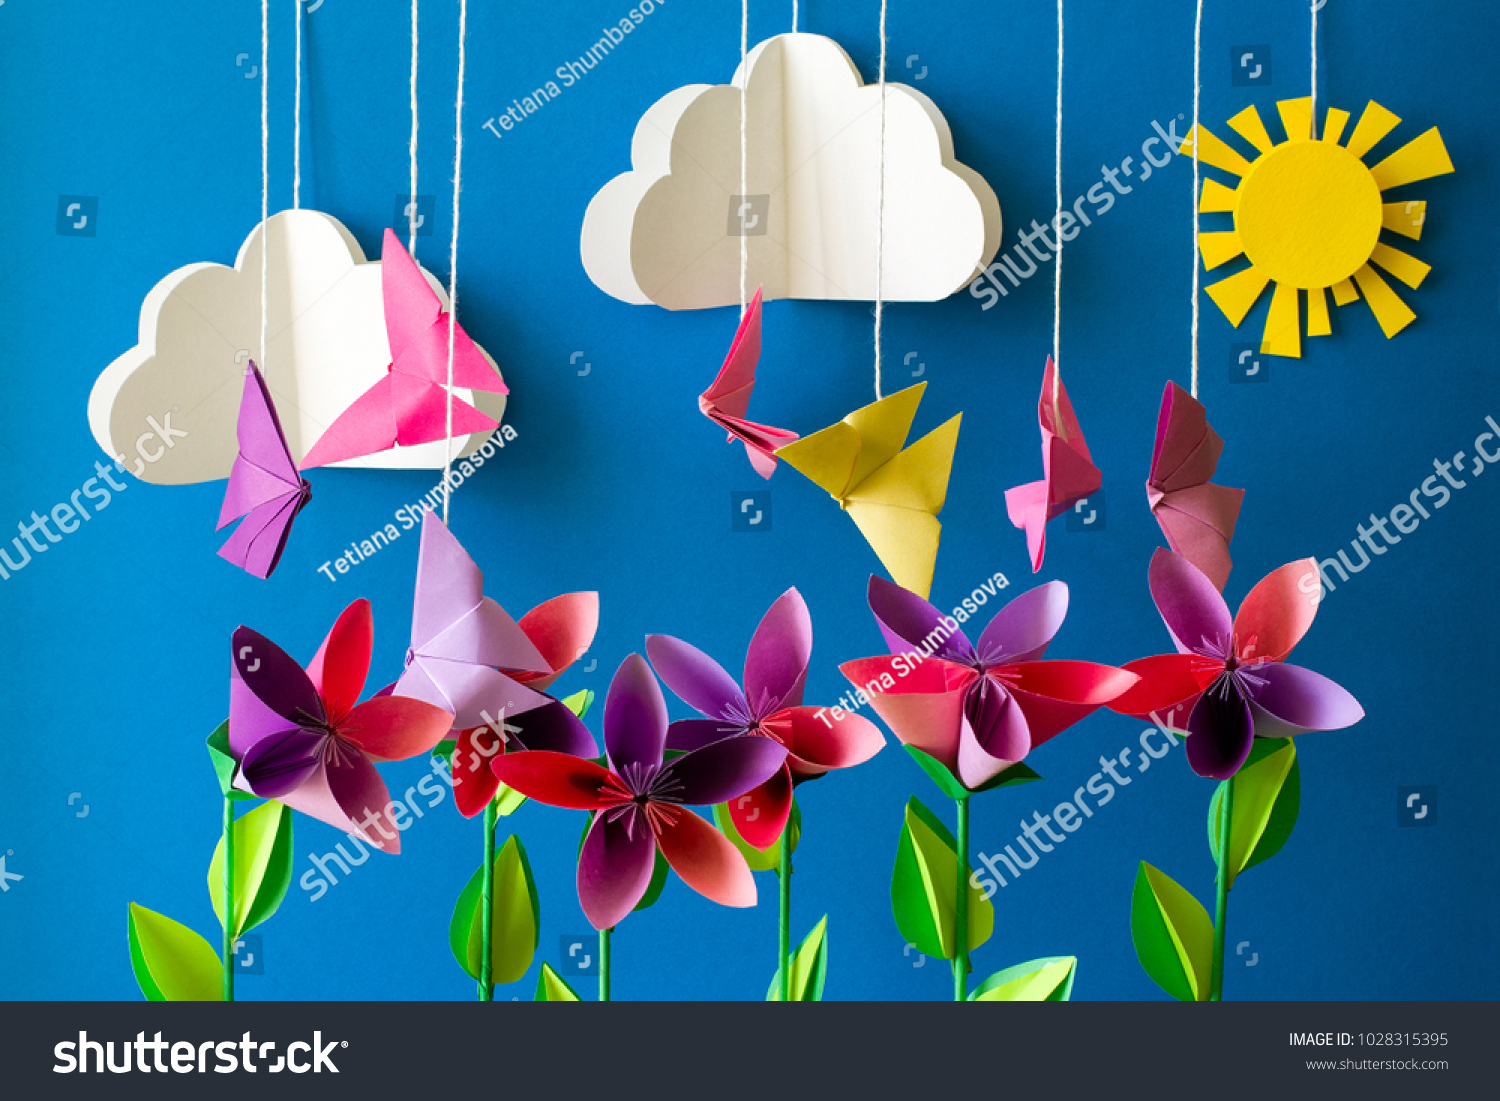 Origami Paper Flowers Butterflies Clouds Sun Stock Photo Edit Now